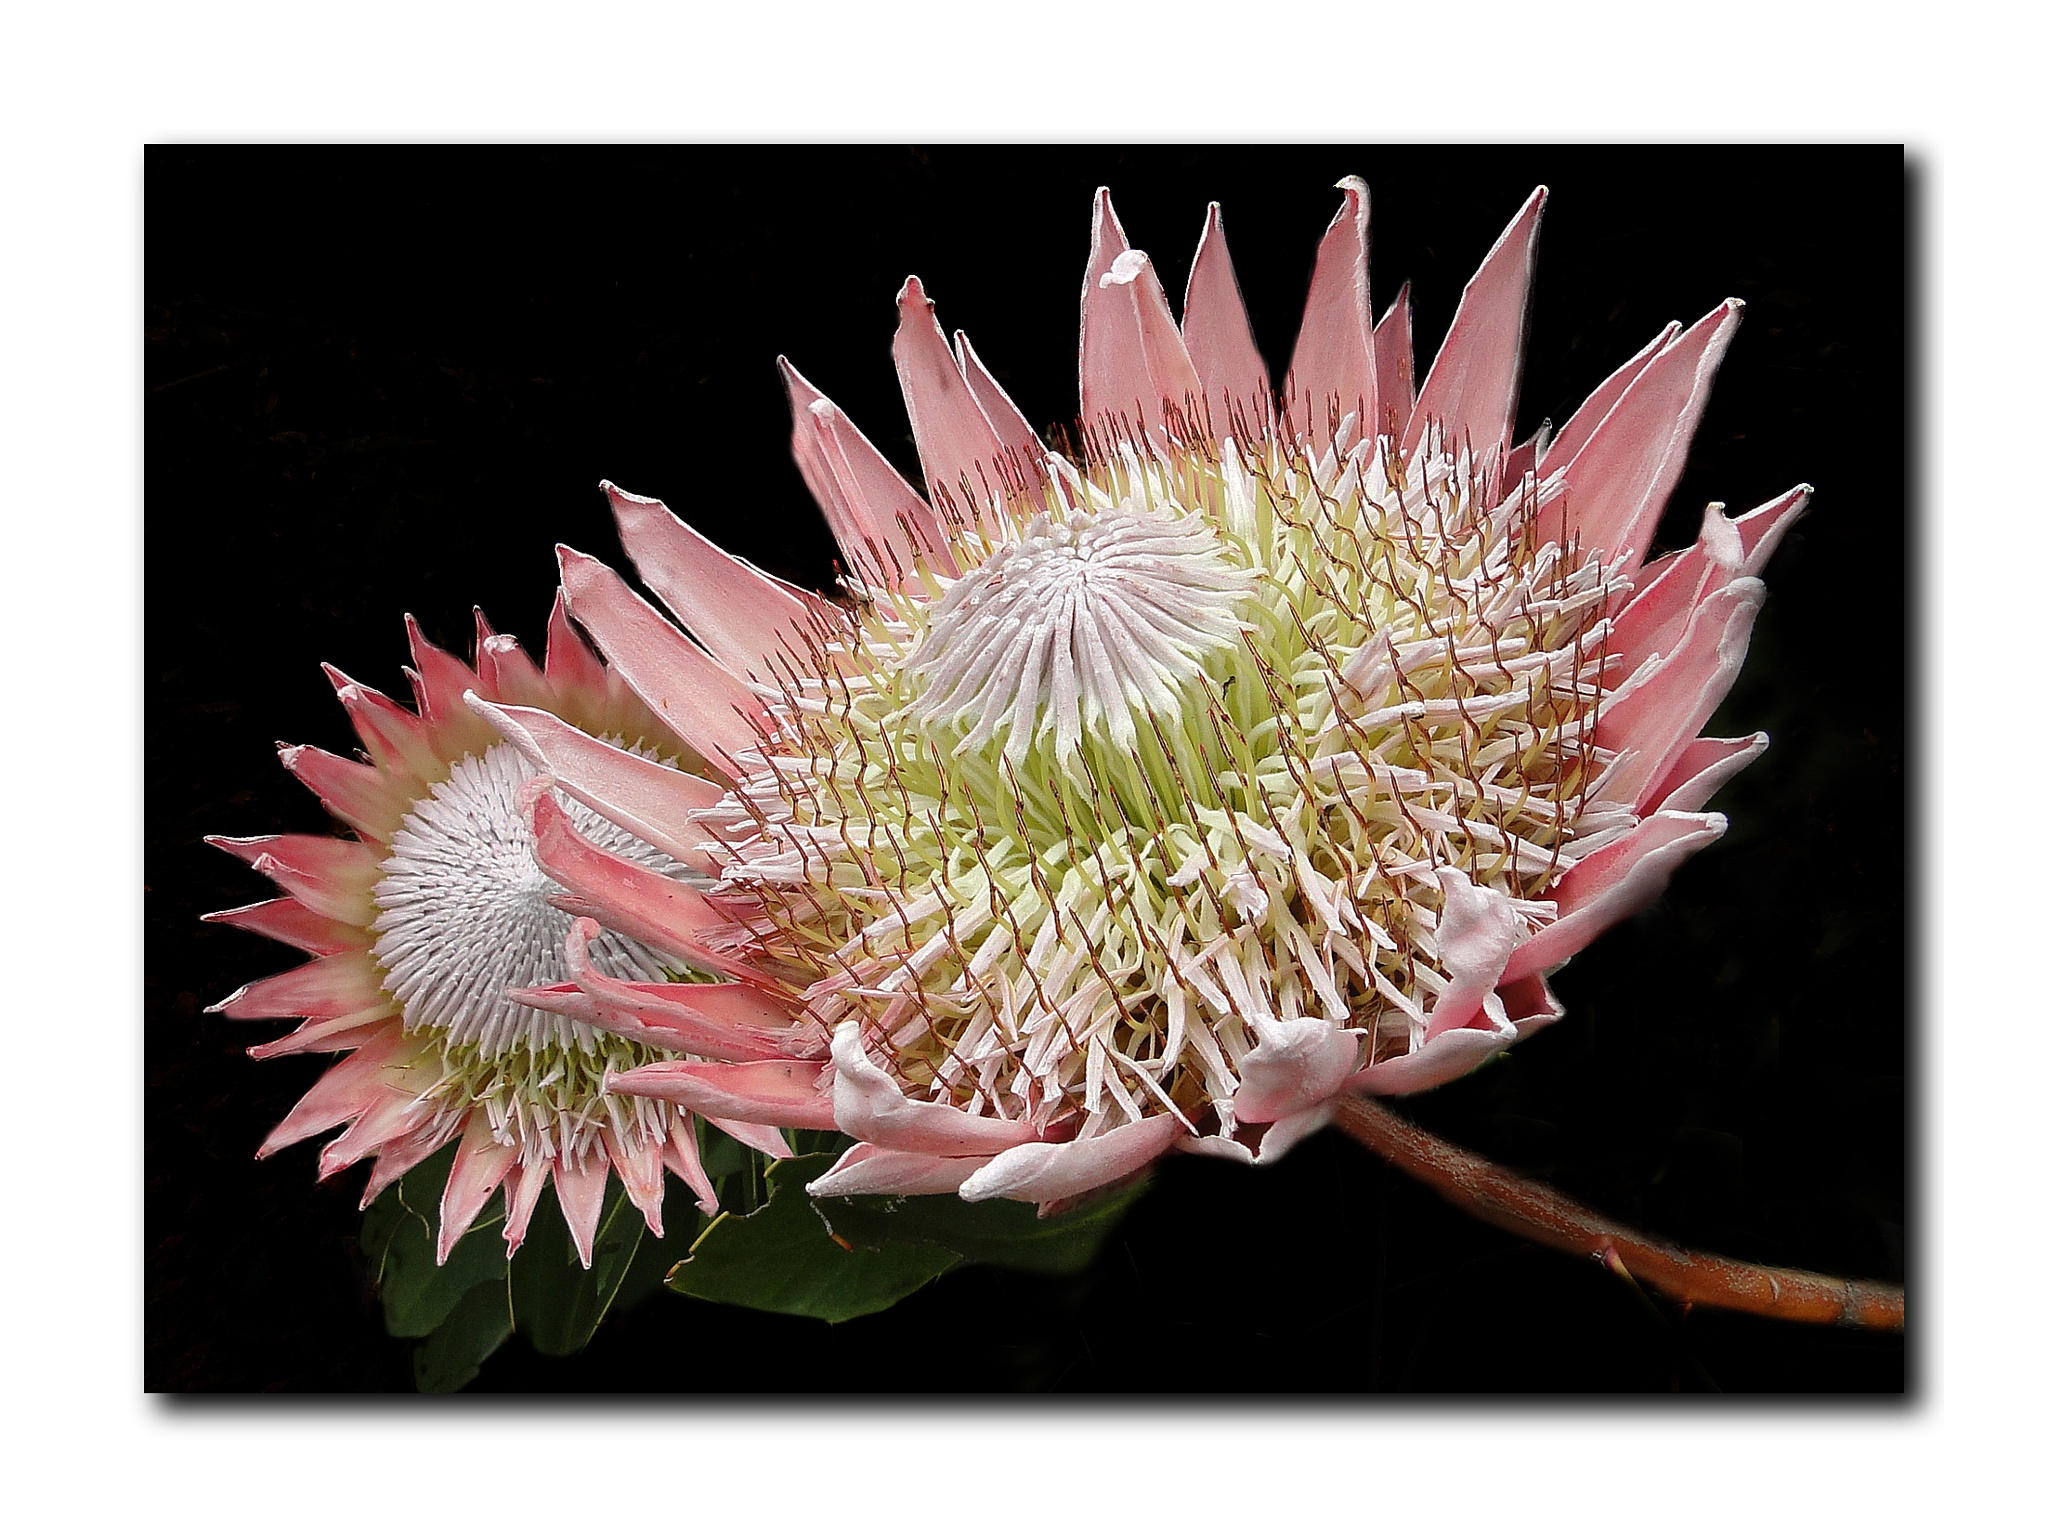 King protea....The national flower of South Africa. by Elly Versteeg